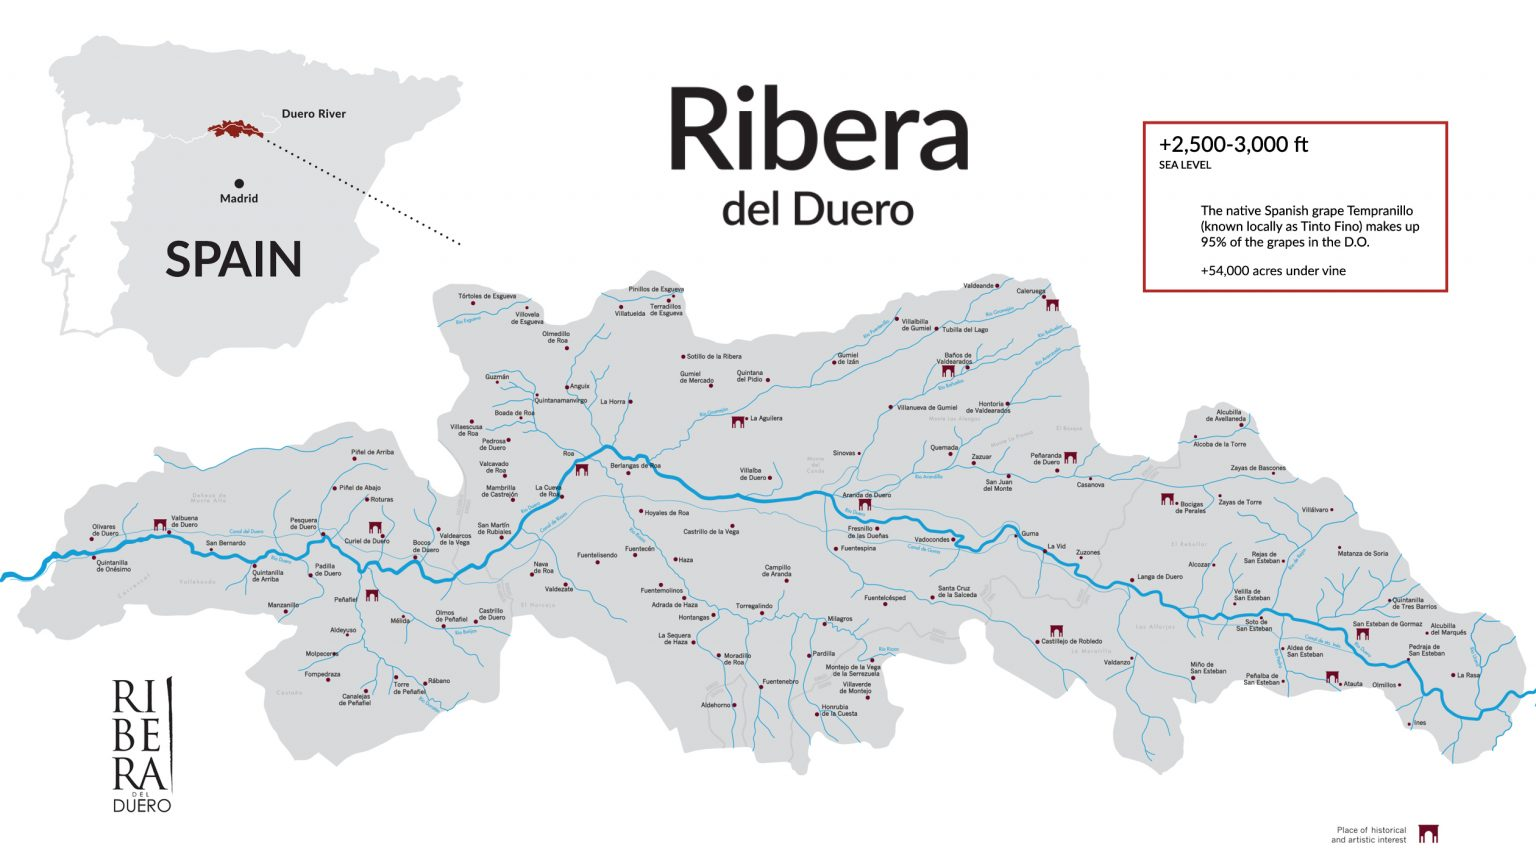 Map of Ribera del Duero wine region in Spain